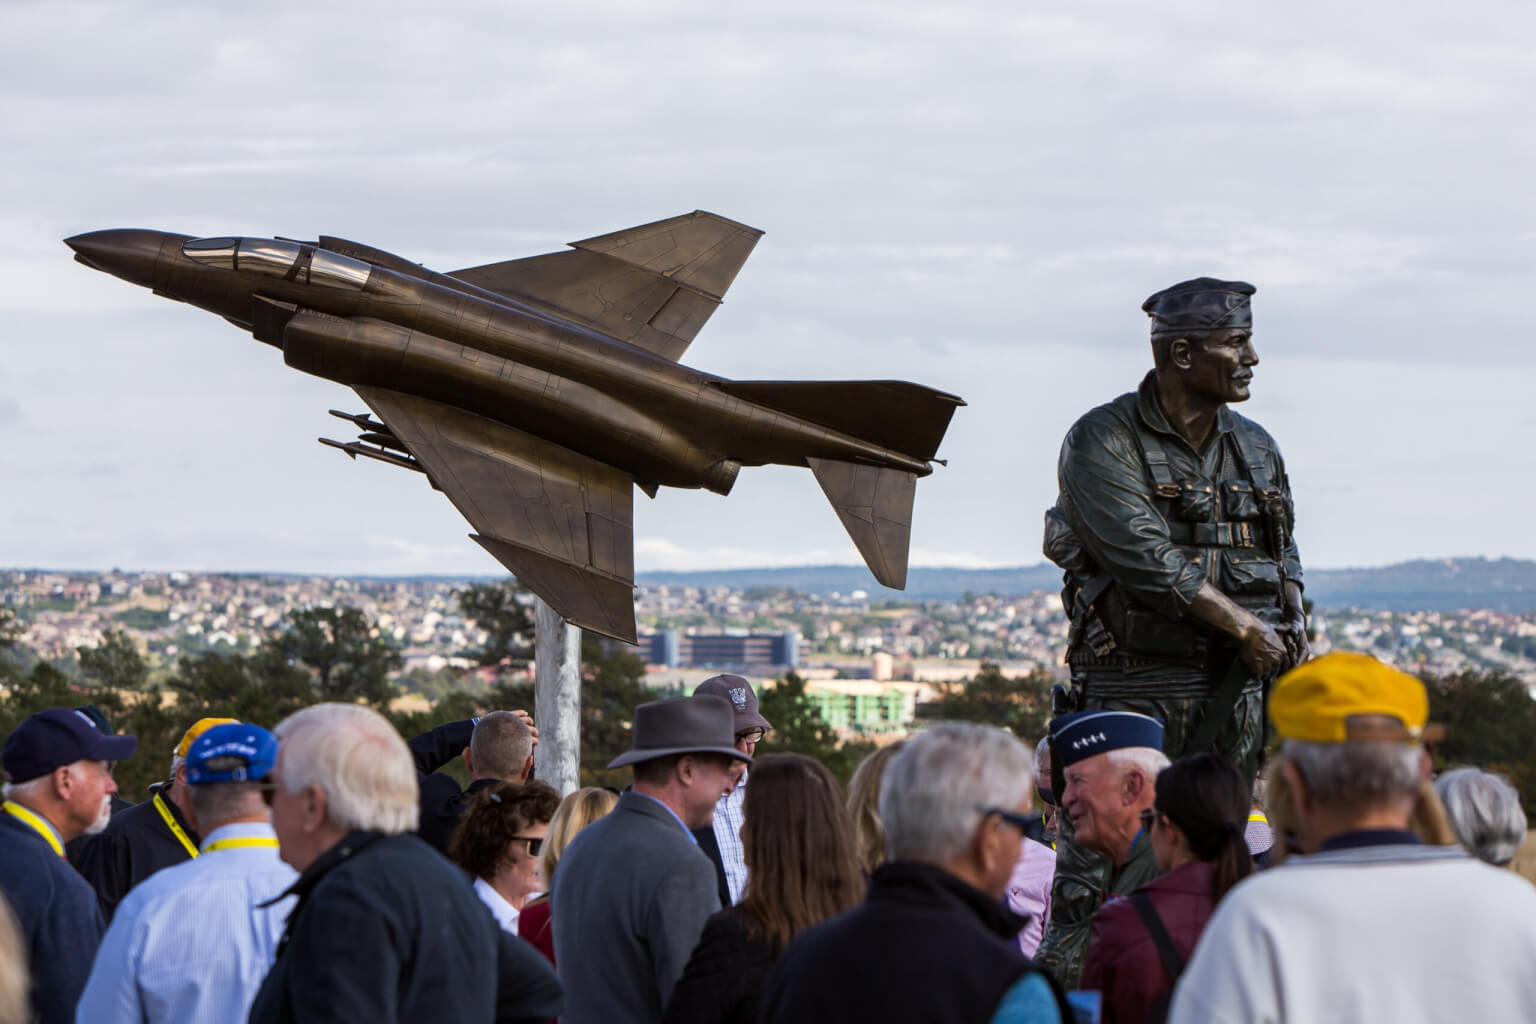 Academy honors air power, ace pilot Robin Olds with memorial